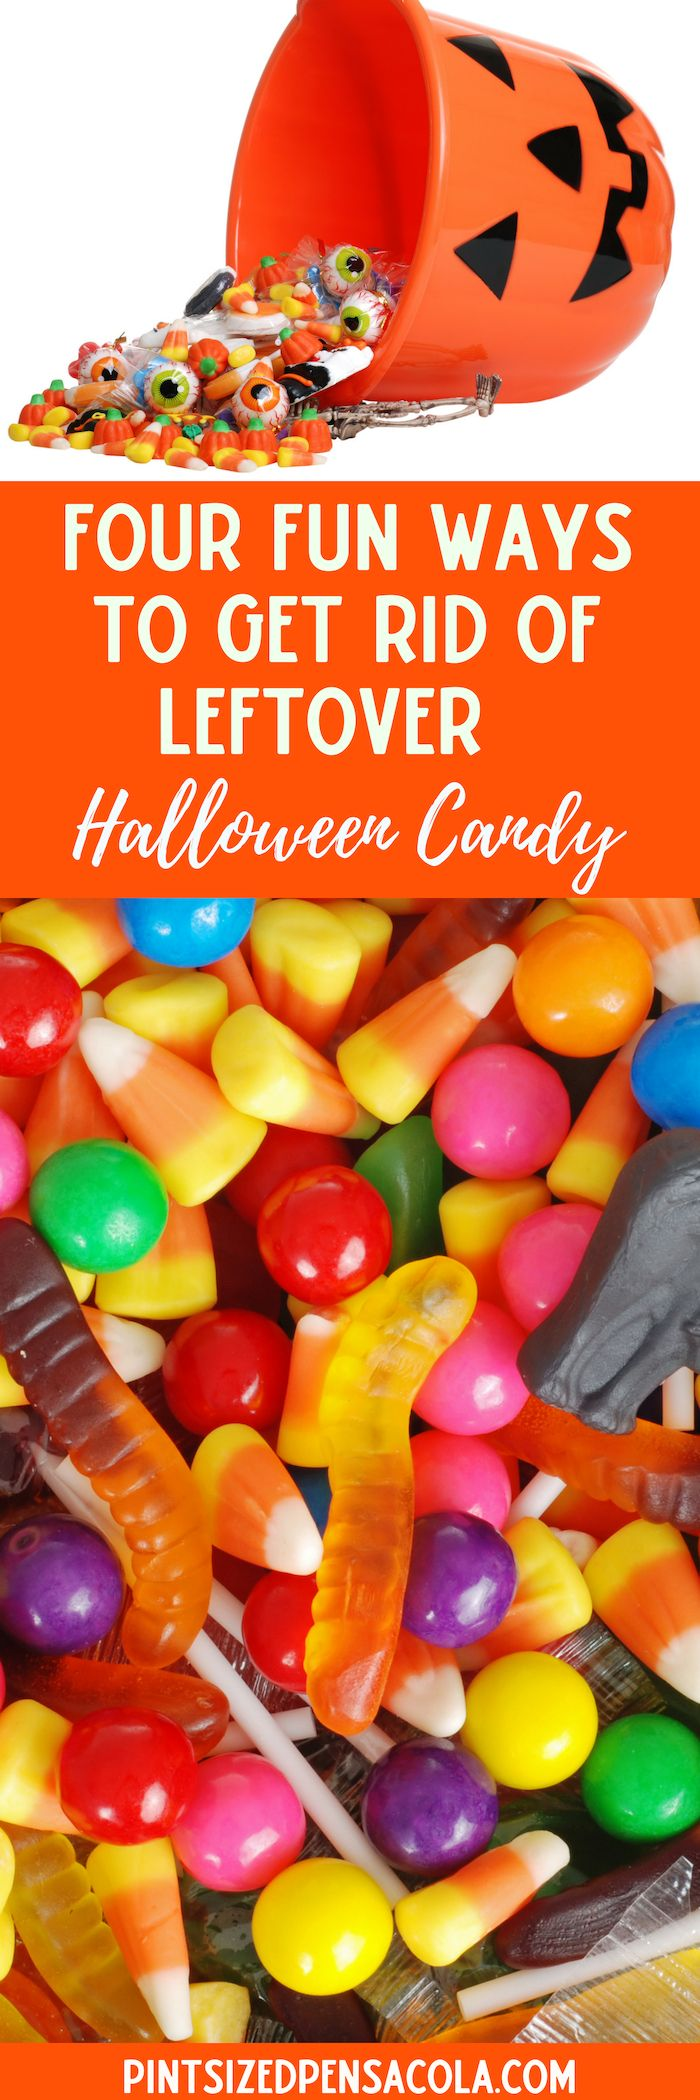 Pensacola Halloween 2020 Four Fun Ways To Get Rid Of Leftover Halloween Candy   Leftover